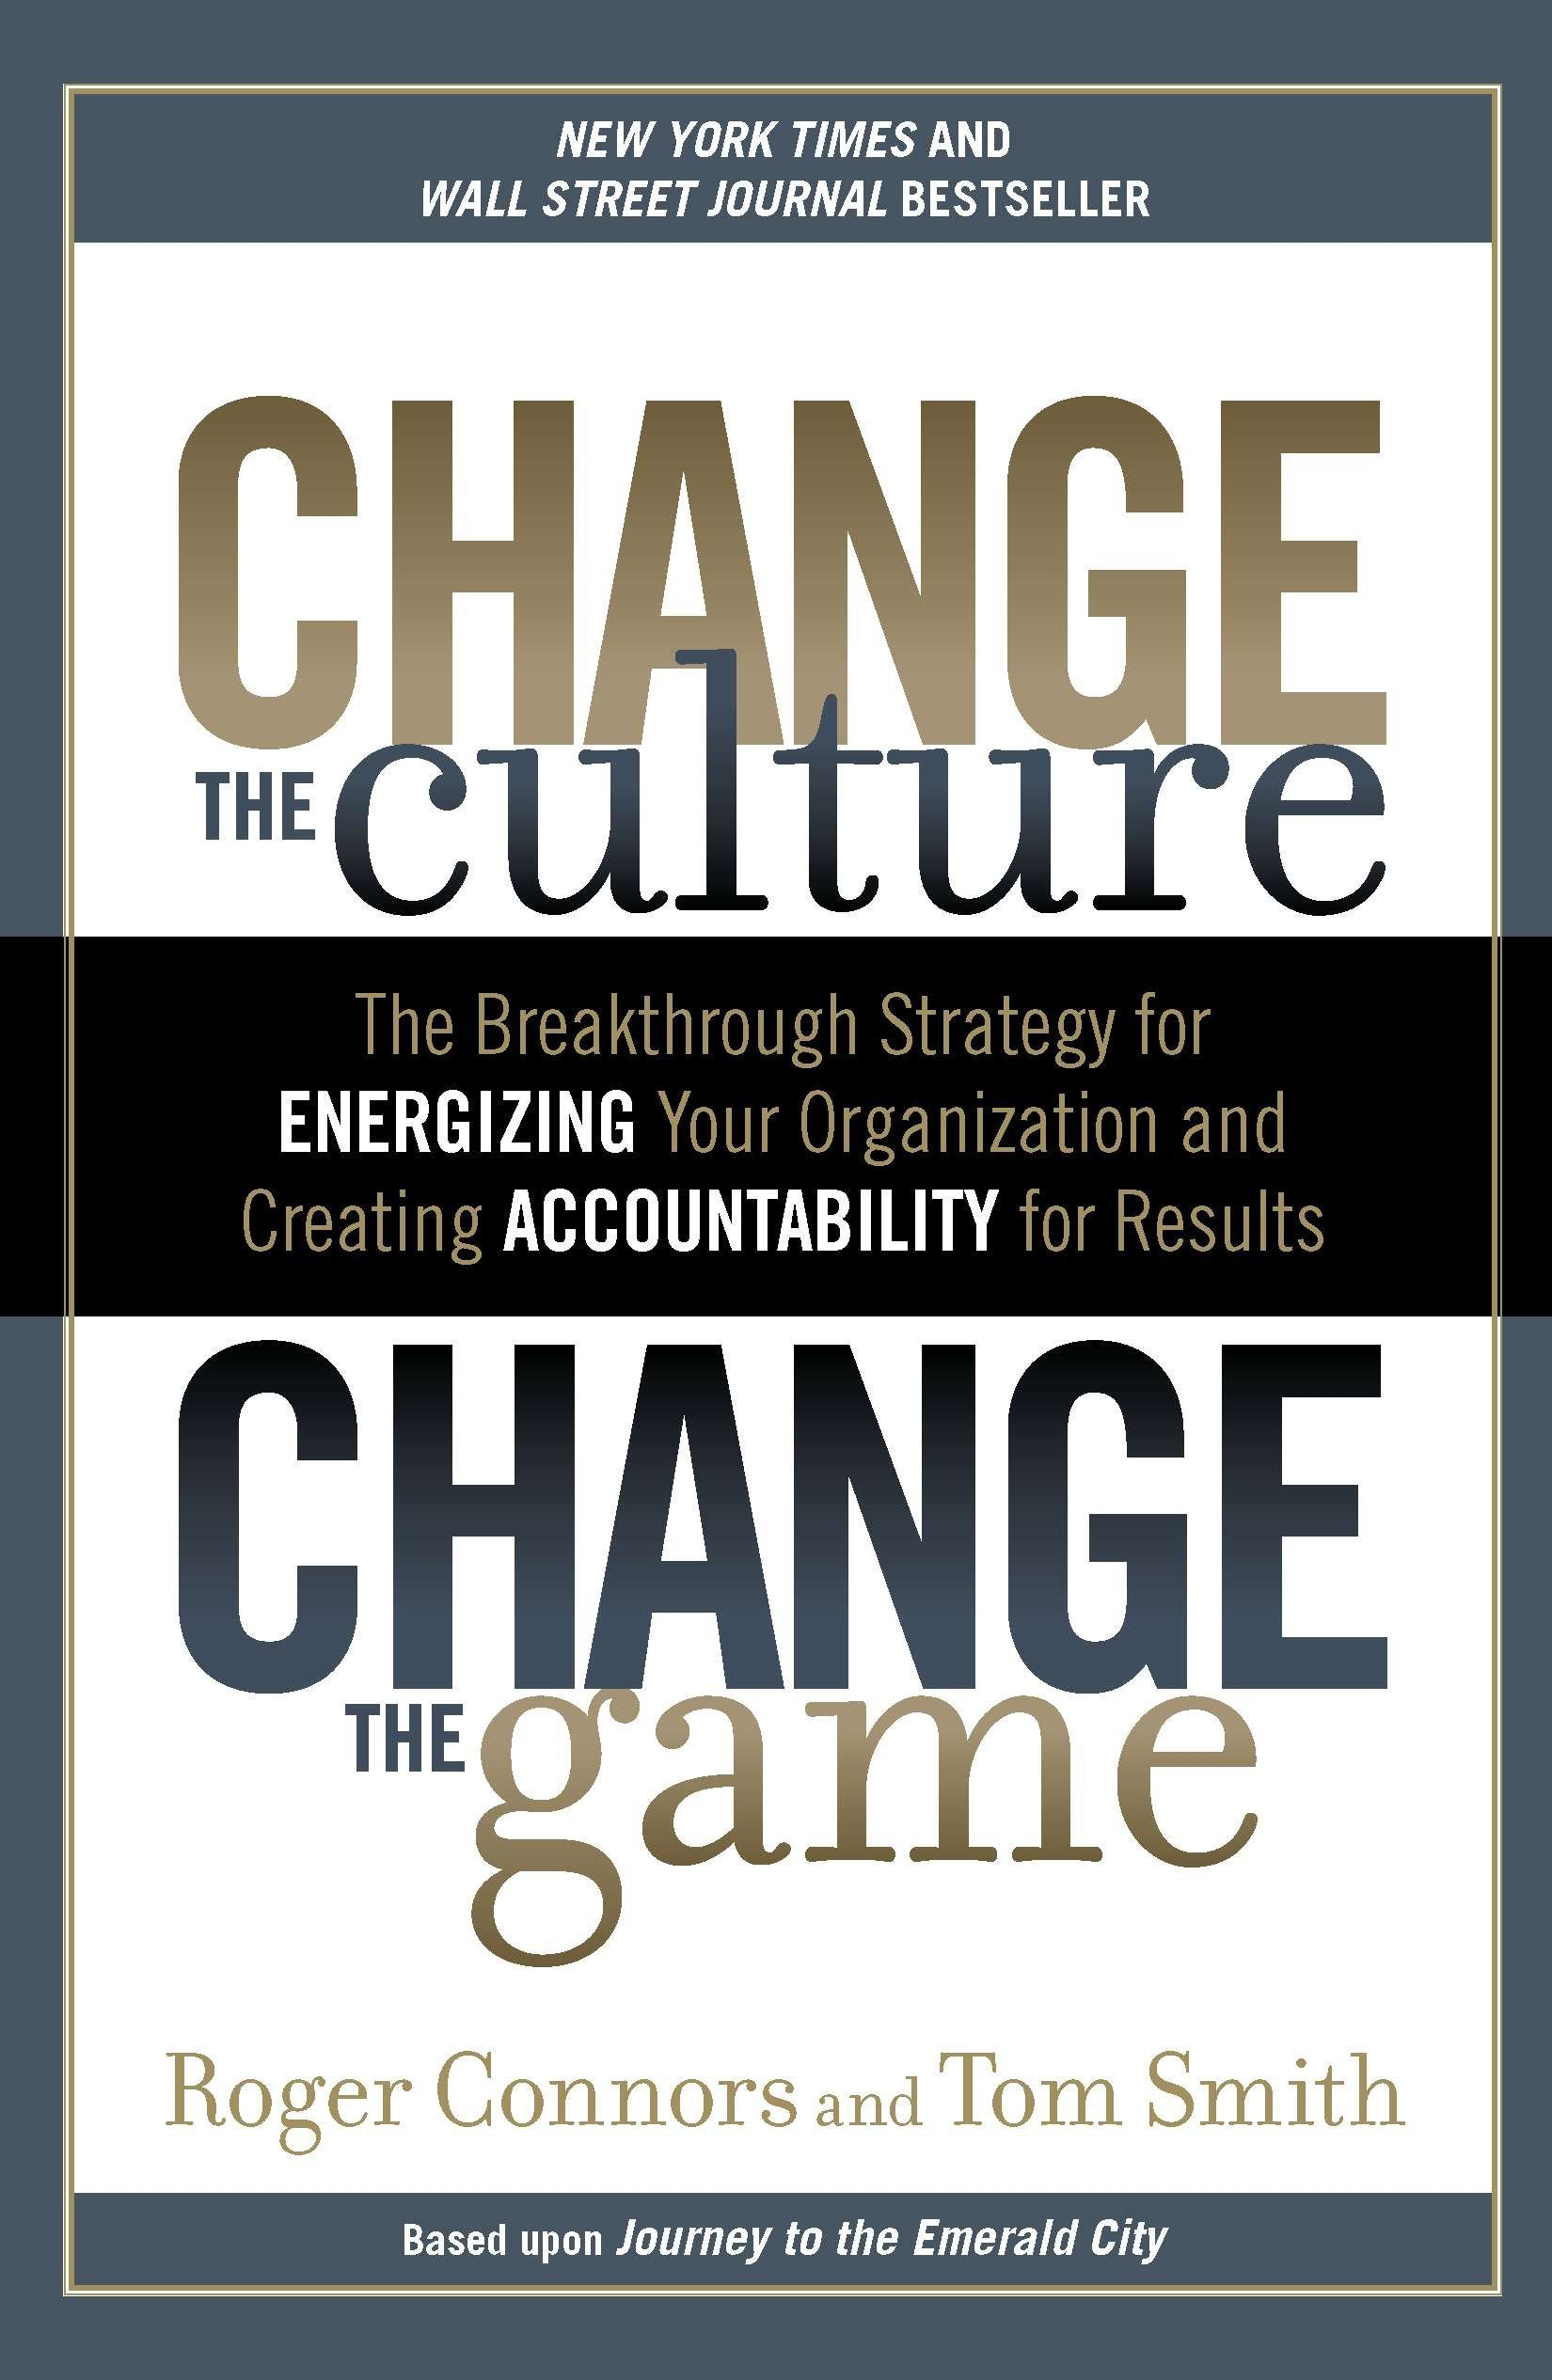 Change The Culture Change The Game  The Breakthrough Strategy For Energizing Your Organization And Creating Accounta Bility For Results